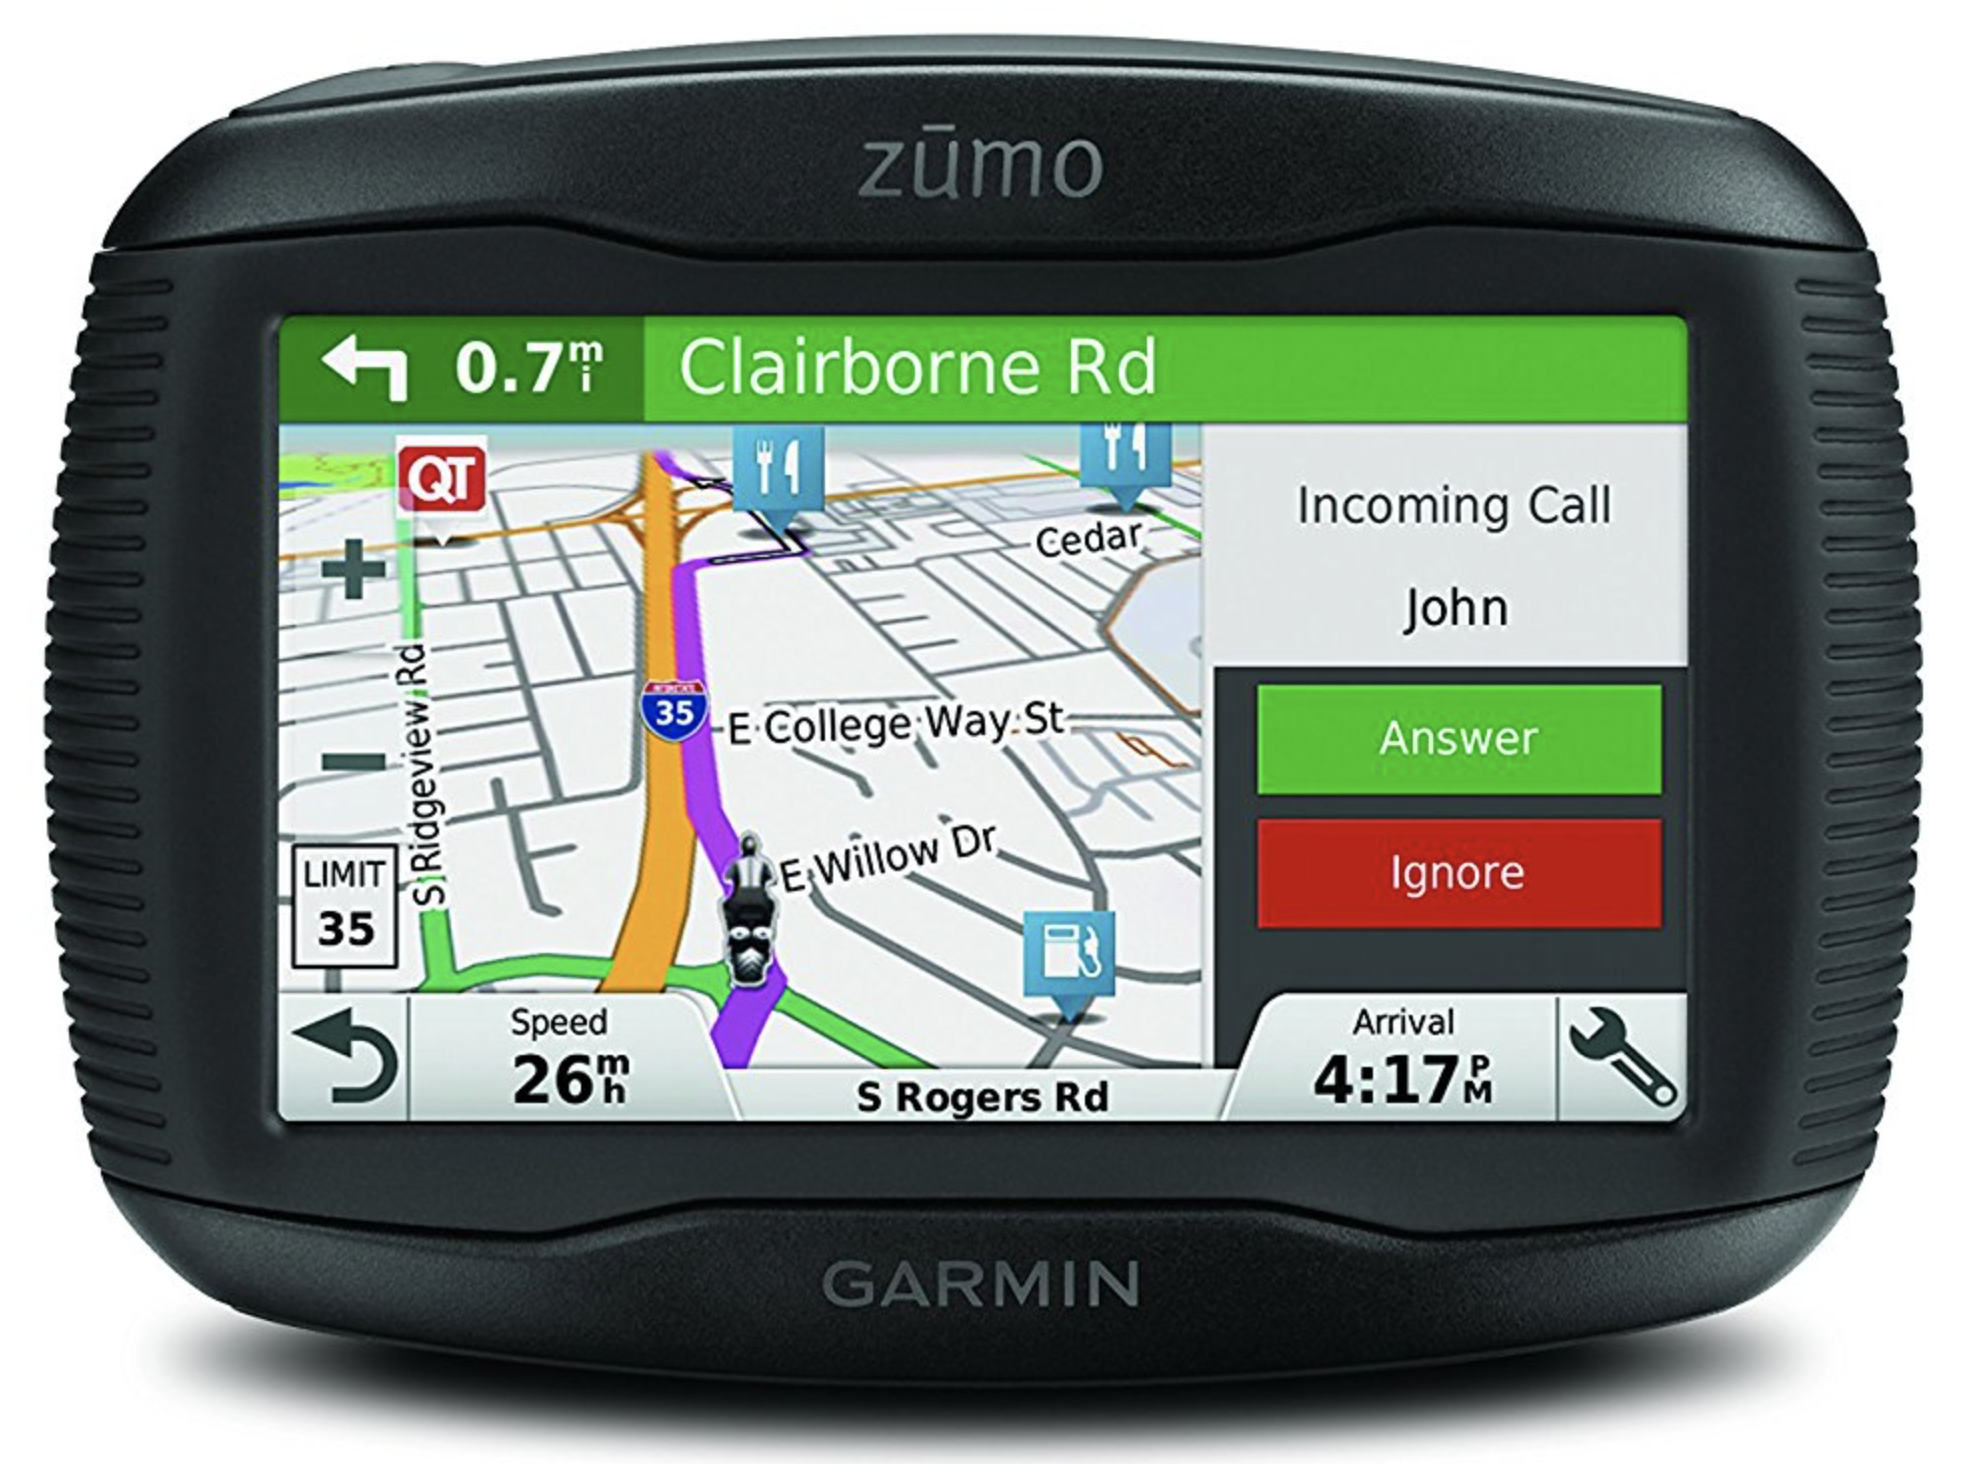 garmin zumo 395lm motorcycle gps review motorcycle intercoms. Black Bedroom Furniture Sets. Home Design Ideas